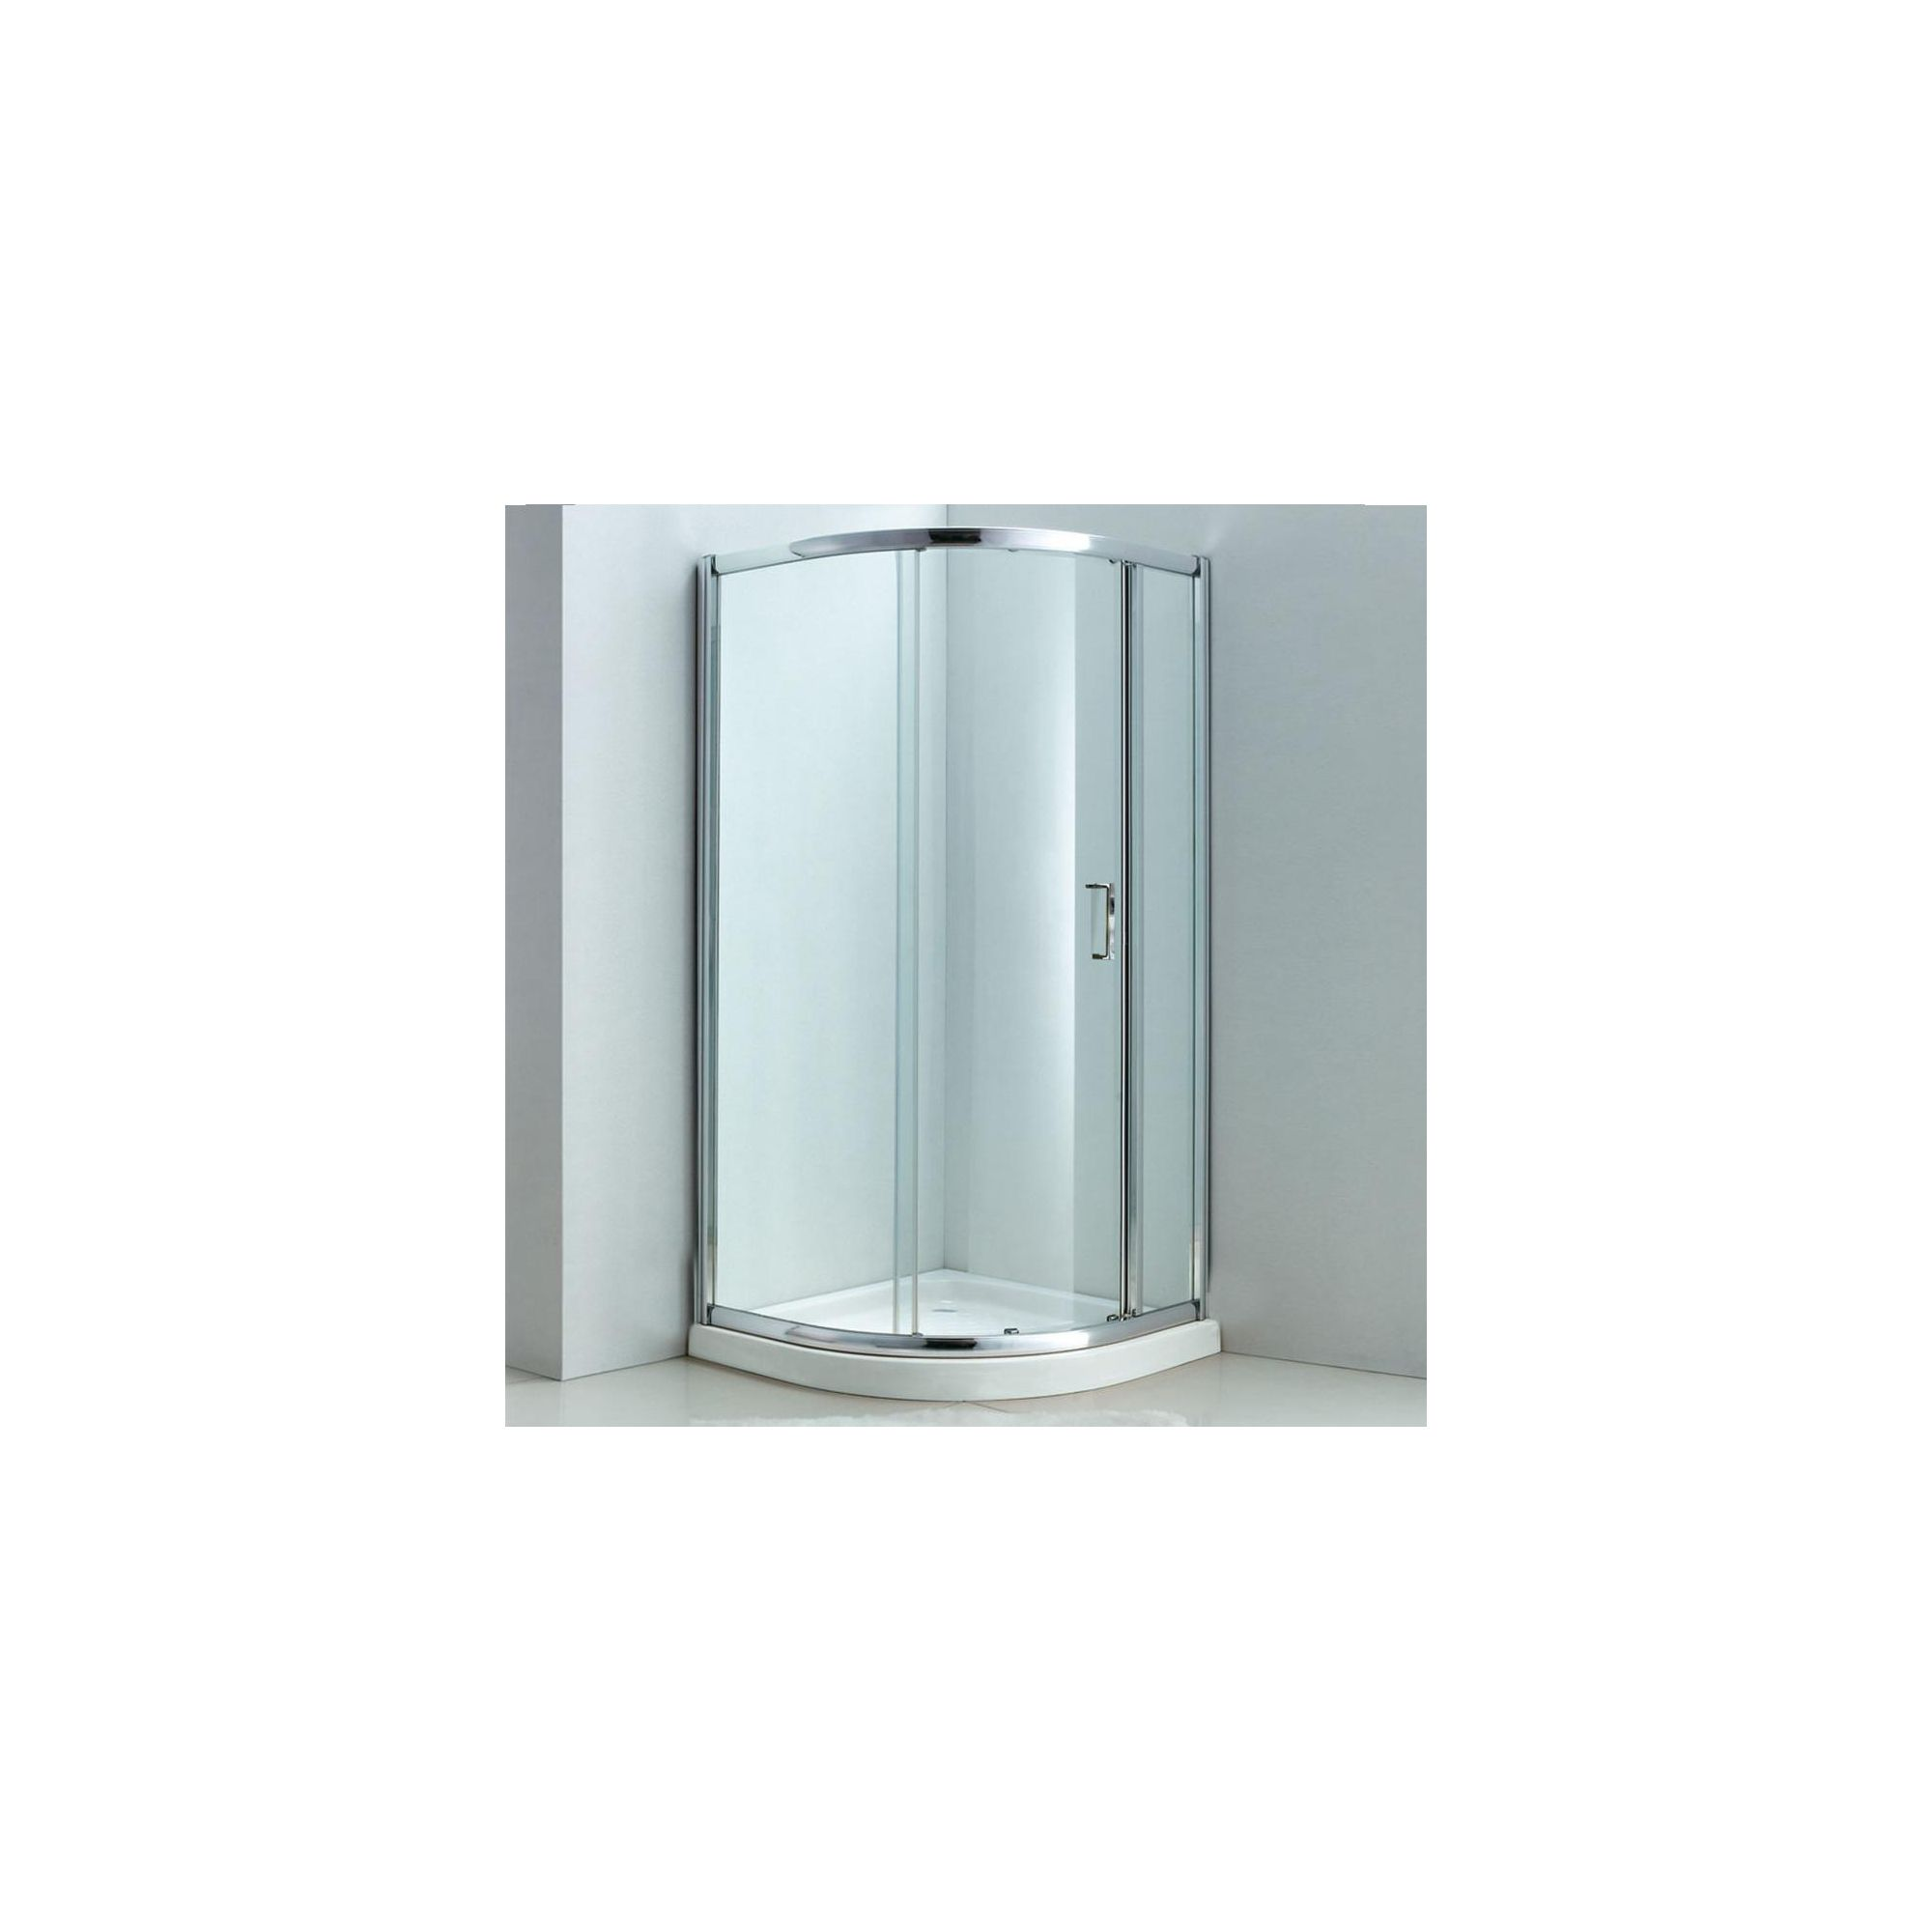 Duchy Style Single Offset Quadrant Door Shower Enclosure, 1200mm x 800mm, 6mm Glass, Low Profile Tray, Right Handed at Tesco Direct